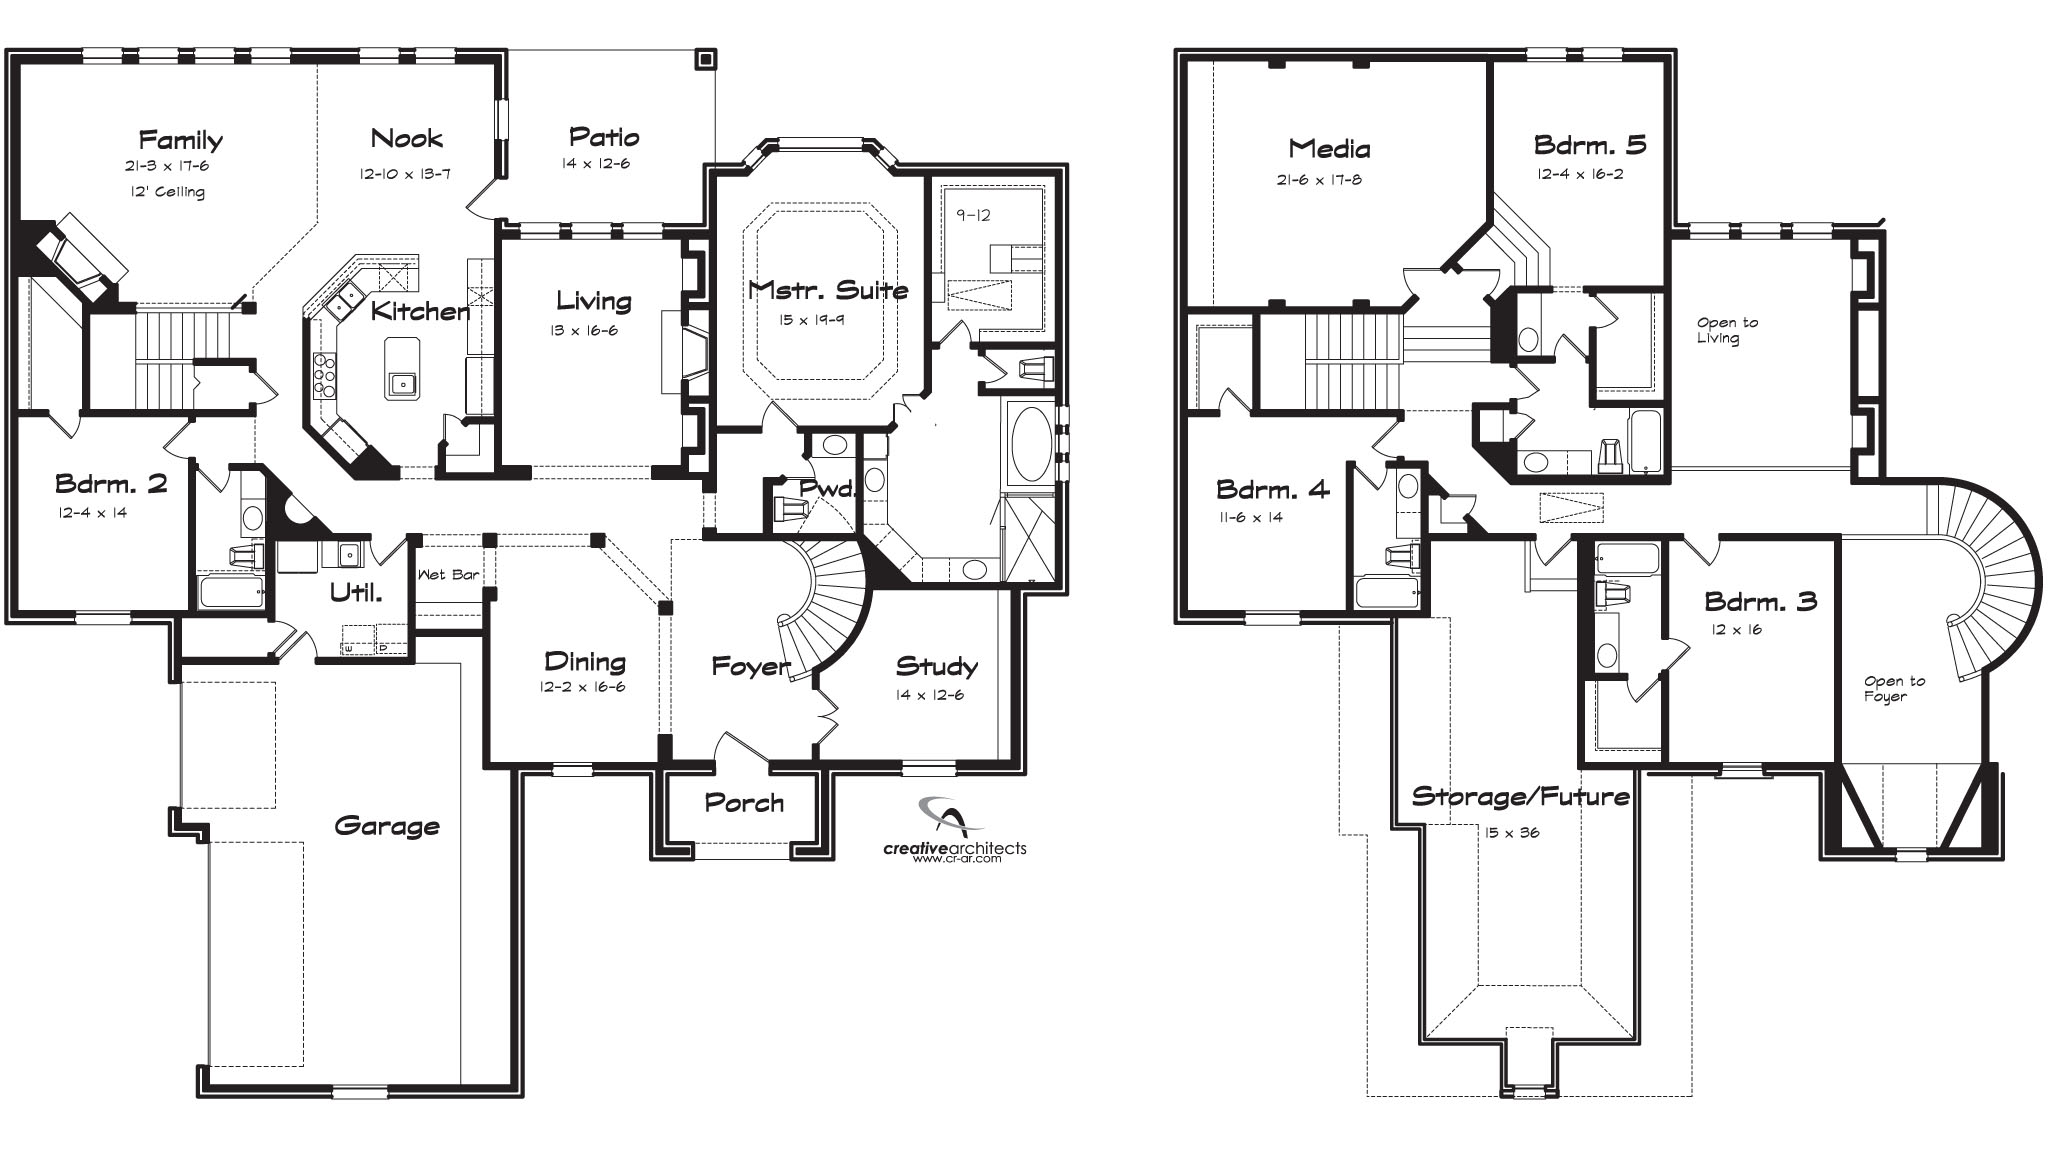 5 bedroom house plans design interior for 5 bedroom house ideas